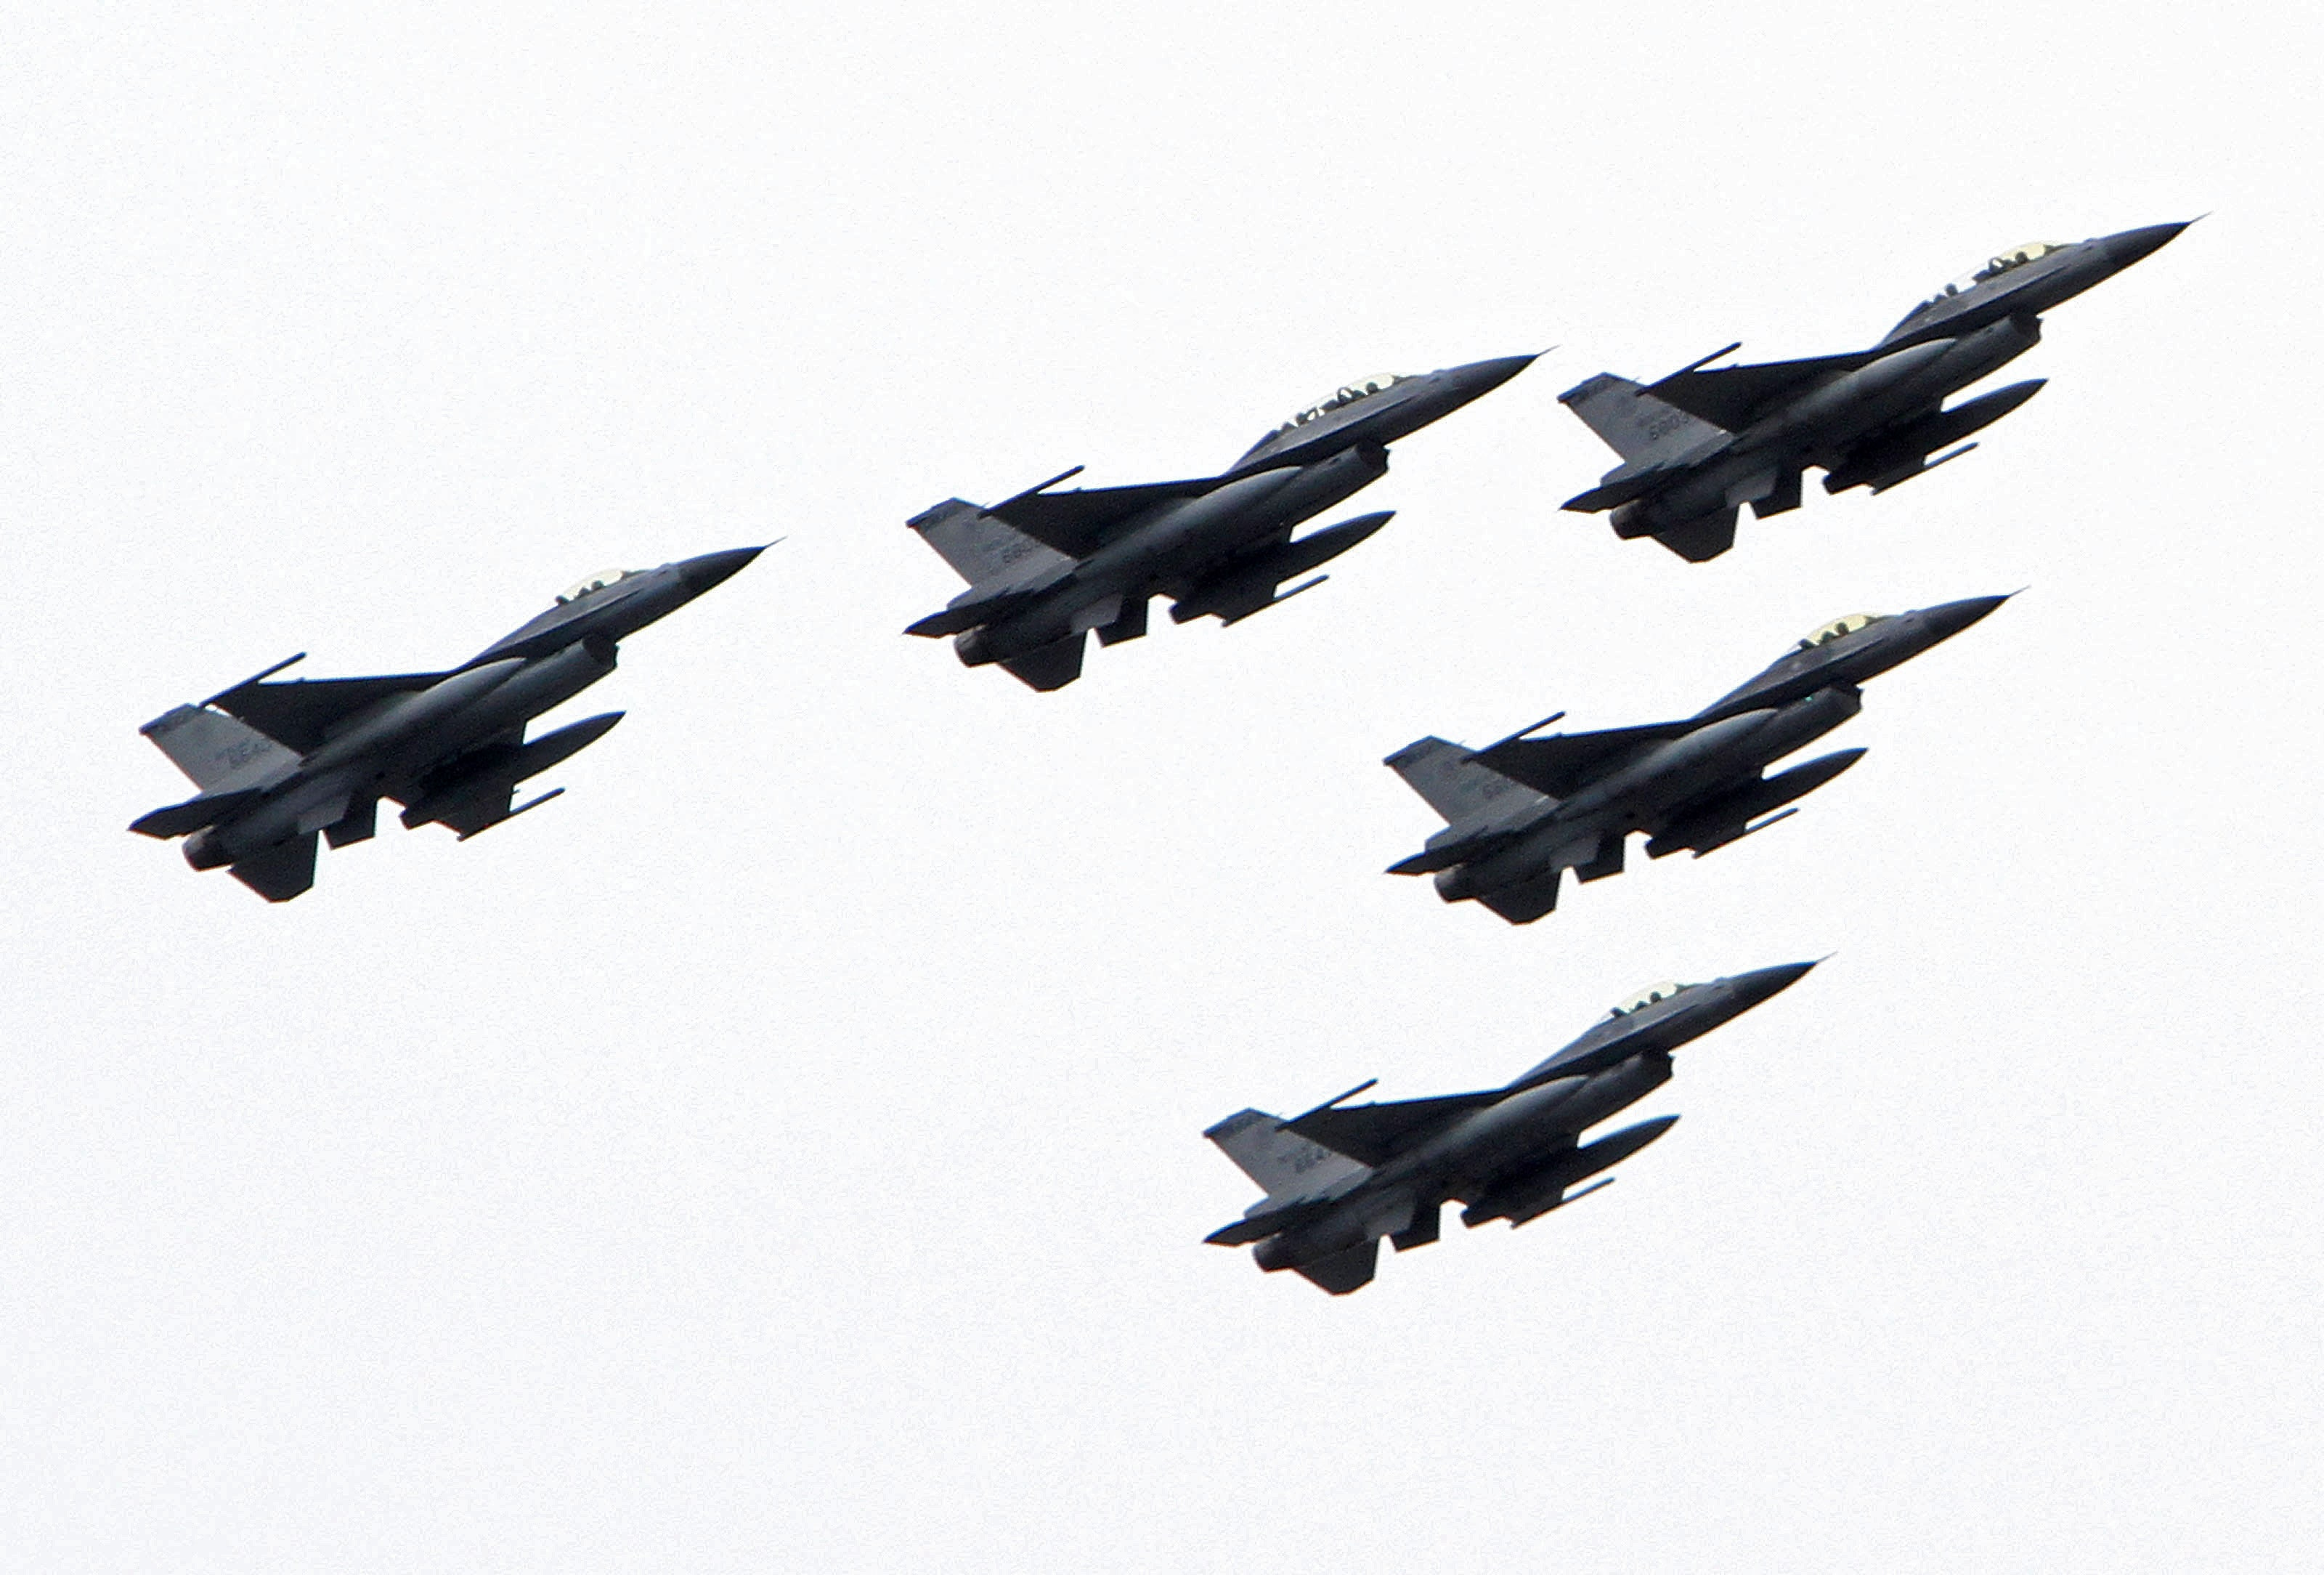 US Raises Hope Of Sale Of New Fighter Jets To Taiwan